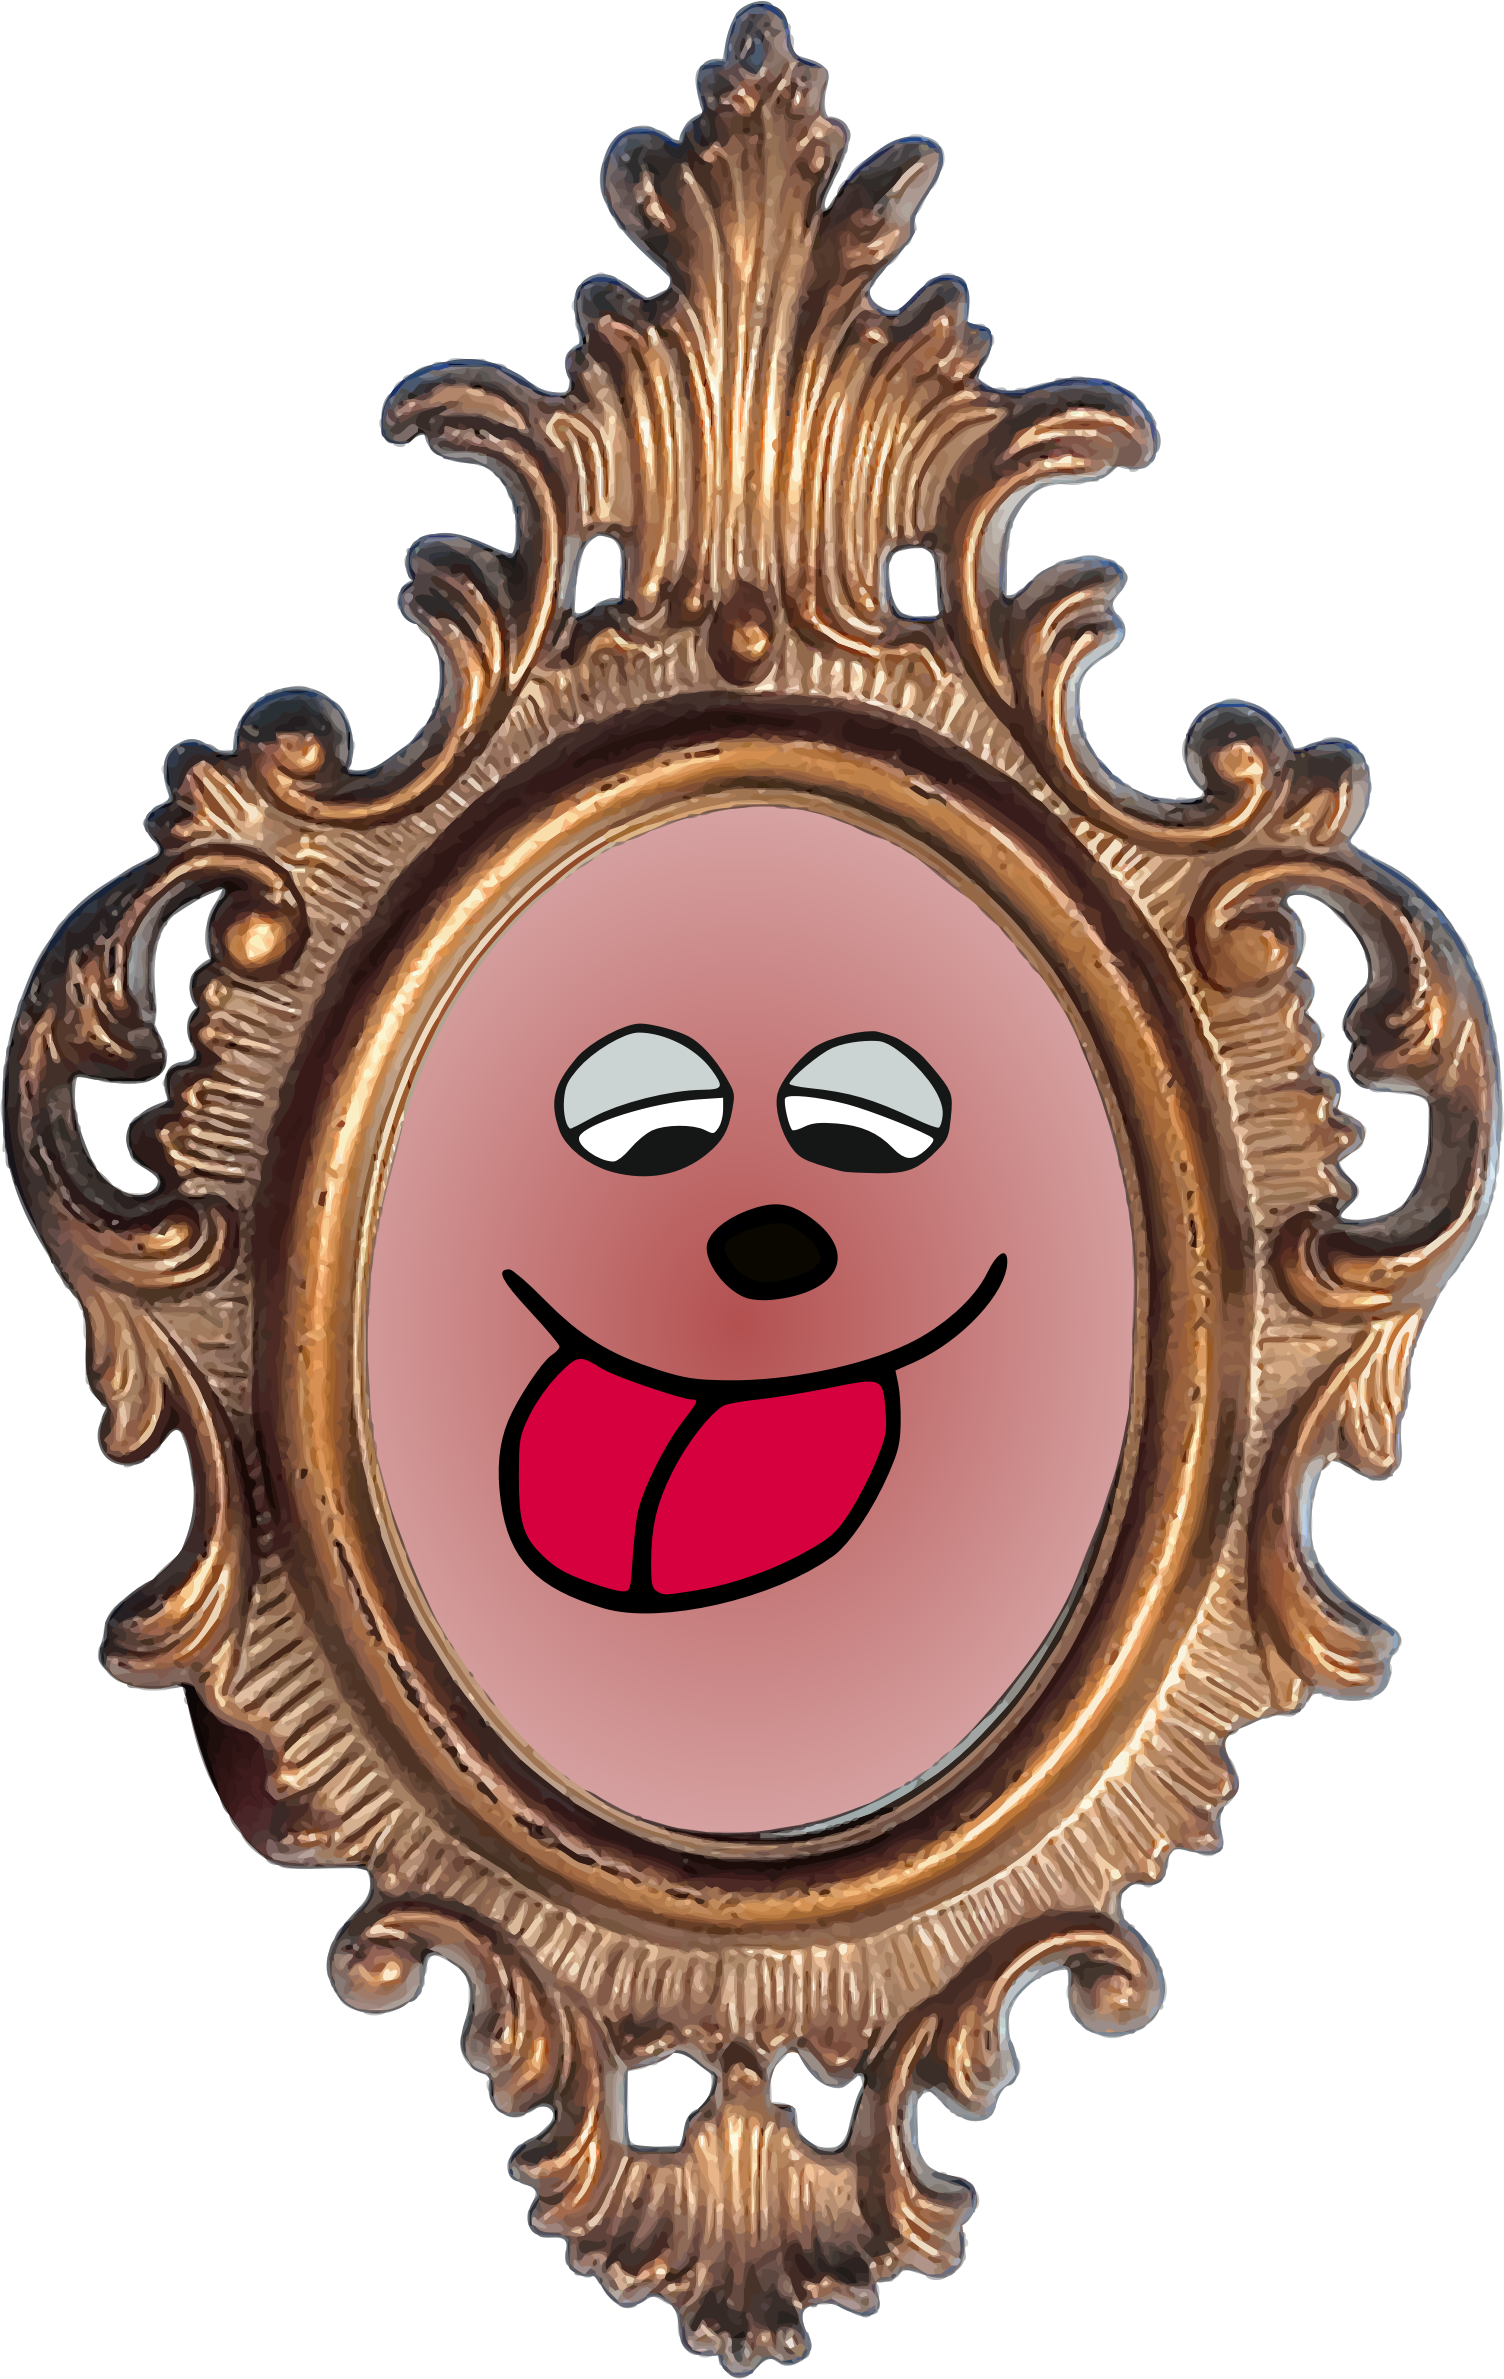 Face in Ornate Frame by Vookimedlo